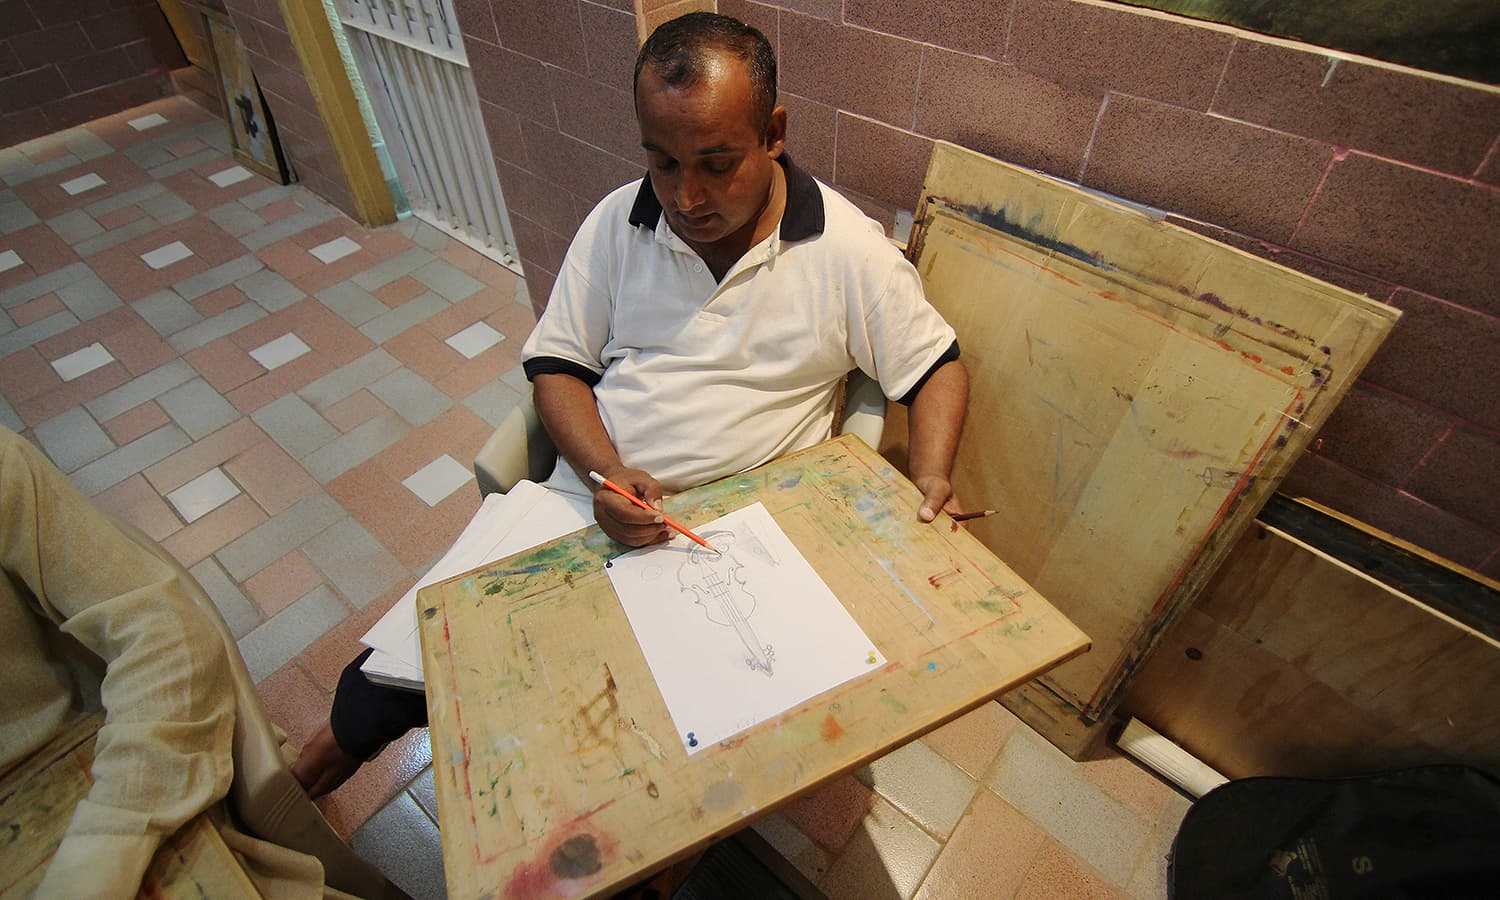 Art has been therapeutic for the prisoners.